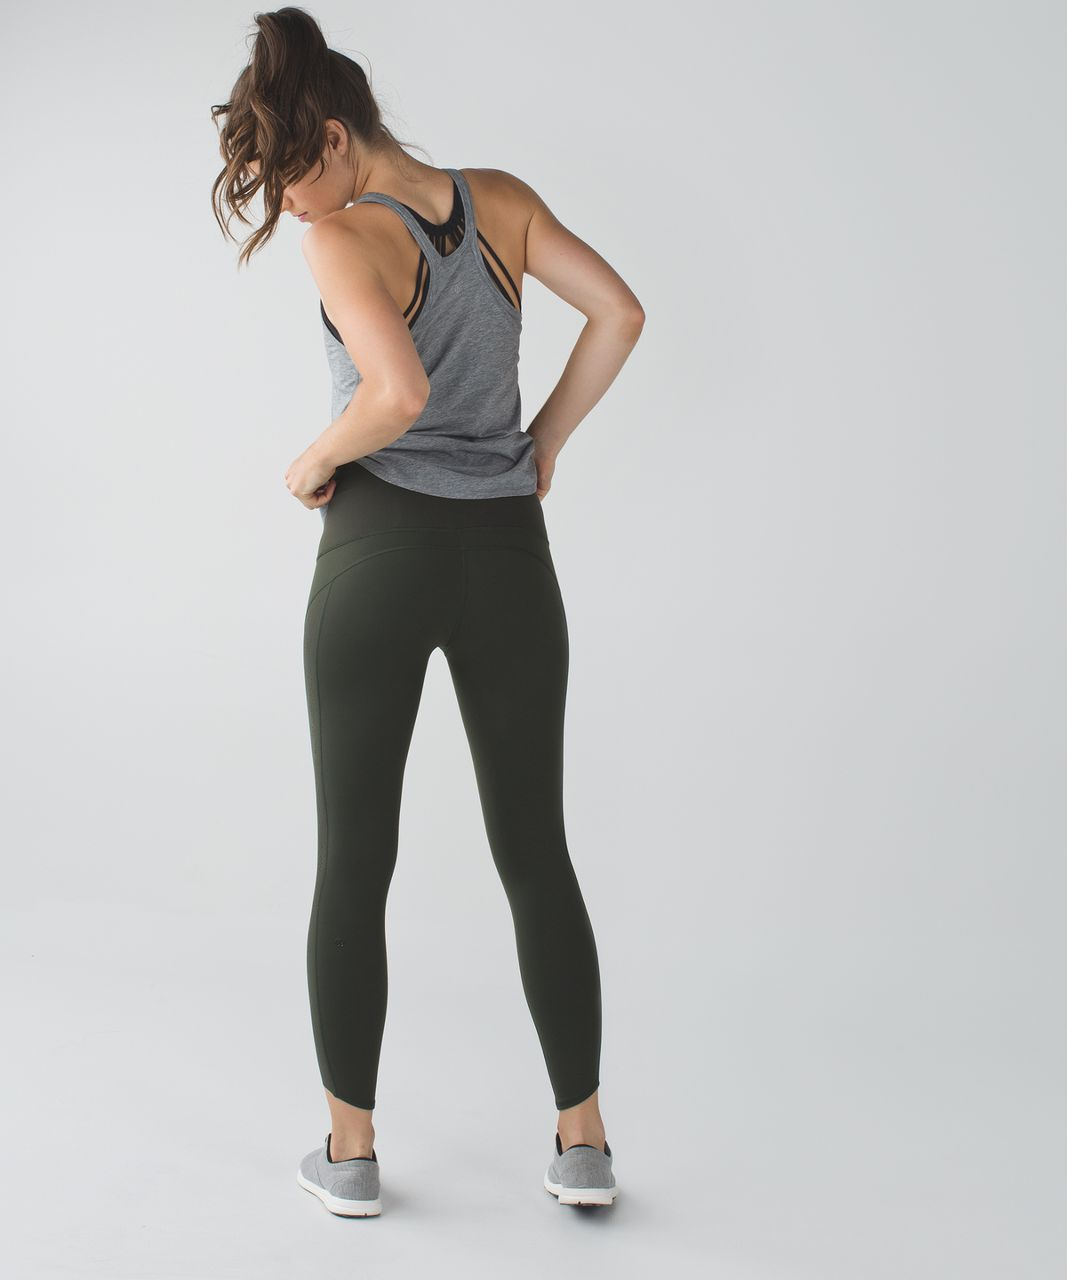 f42baa65a Lululemon Beyond Boundaries Pant - Gator Green   Fatigue Green ...